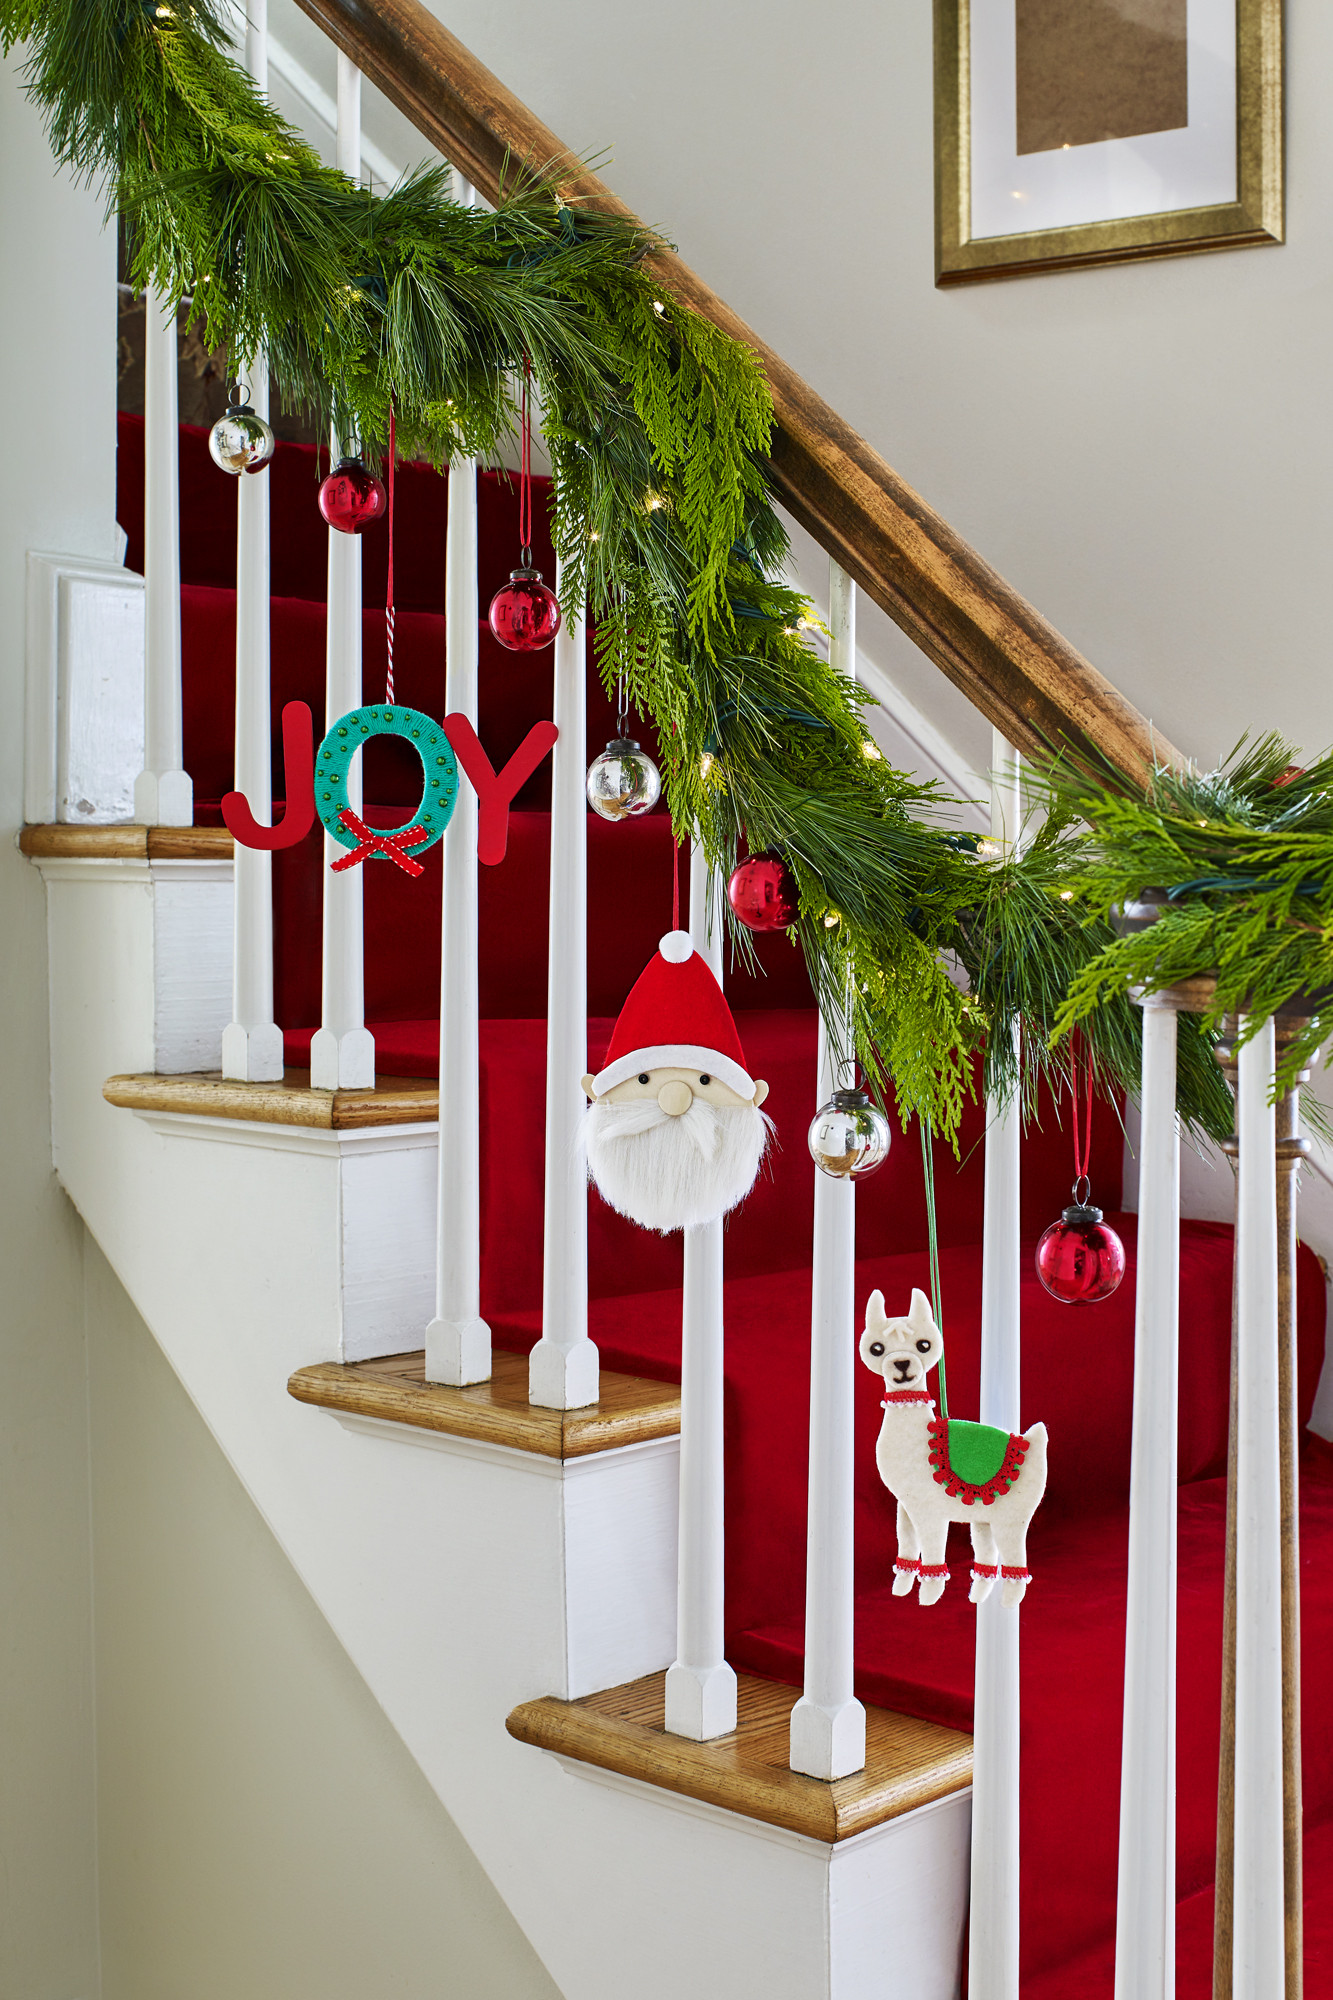 Best ideas about DIY Christmas Ornament Ideas . Save or Pin 32 Homemade DIY Christmas Ornament Craft Ideas How To Now.